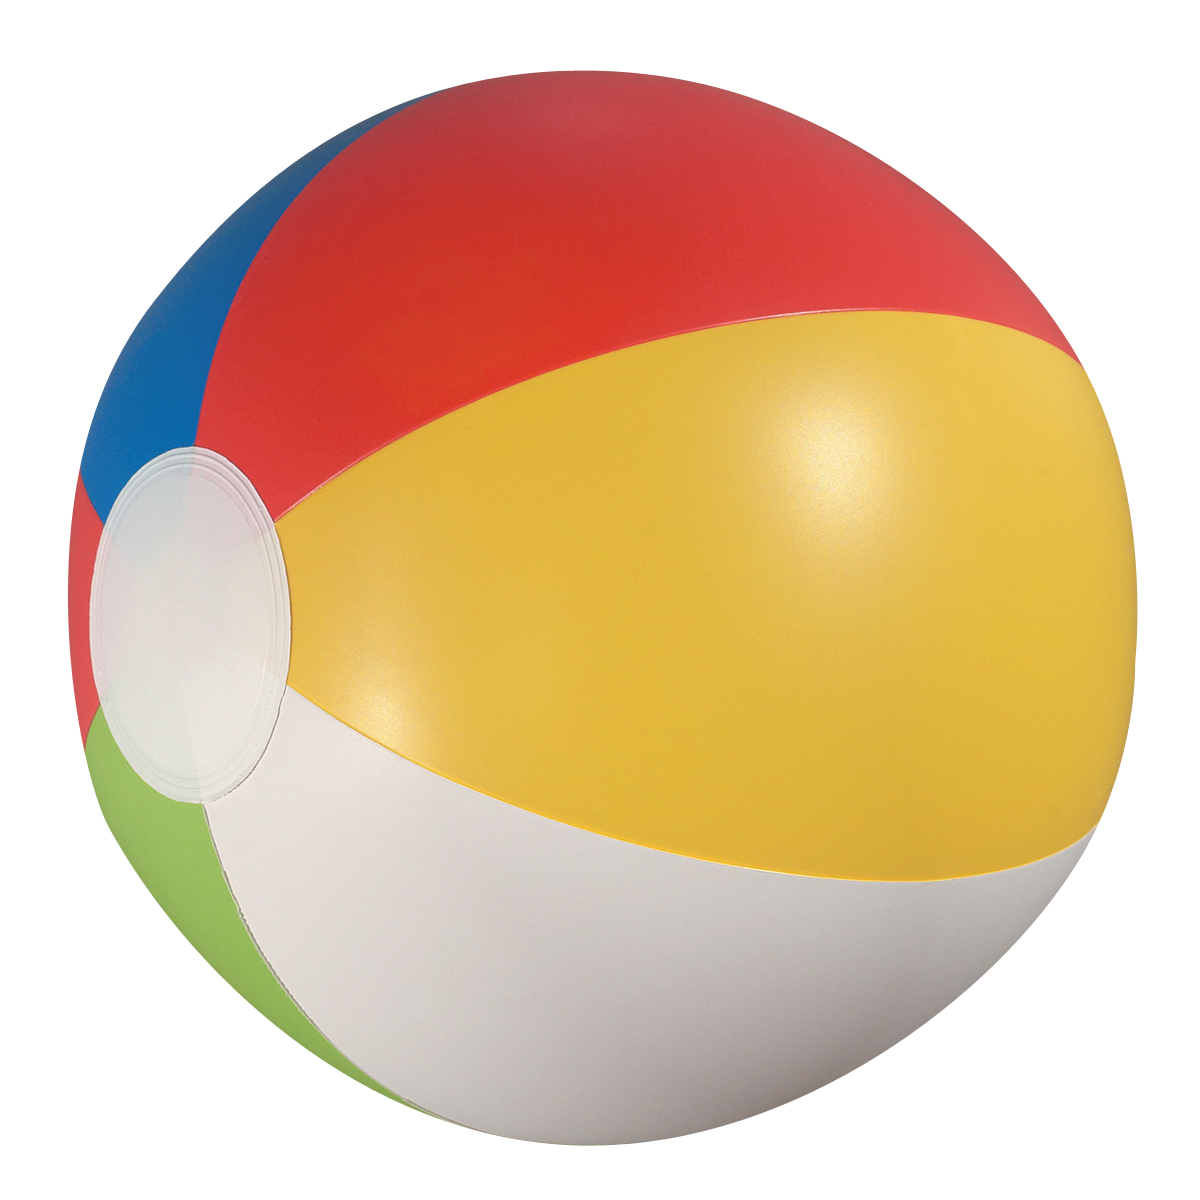 Beach Ball Photo - ClipArt Best